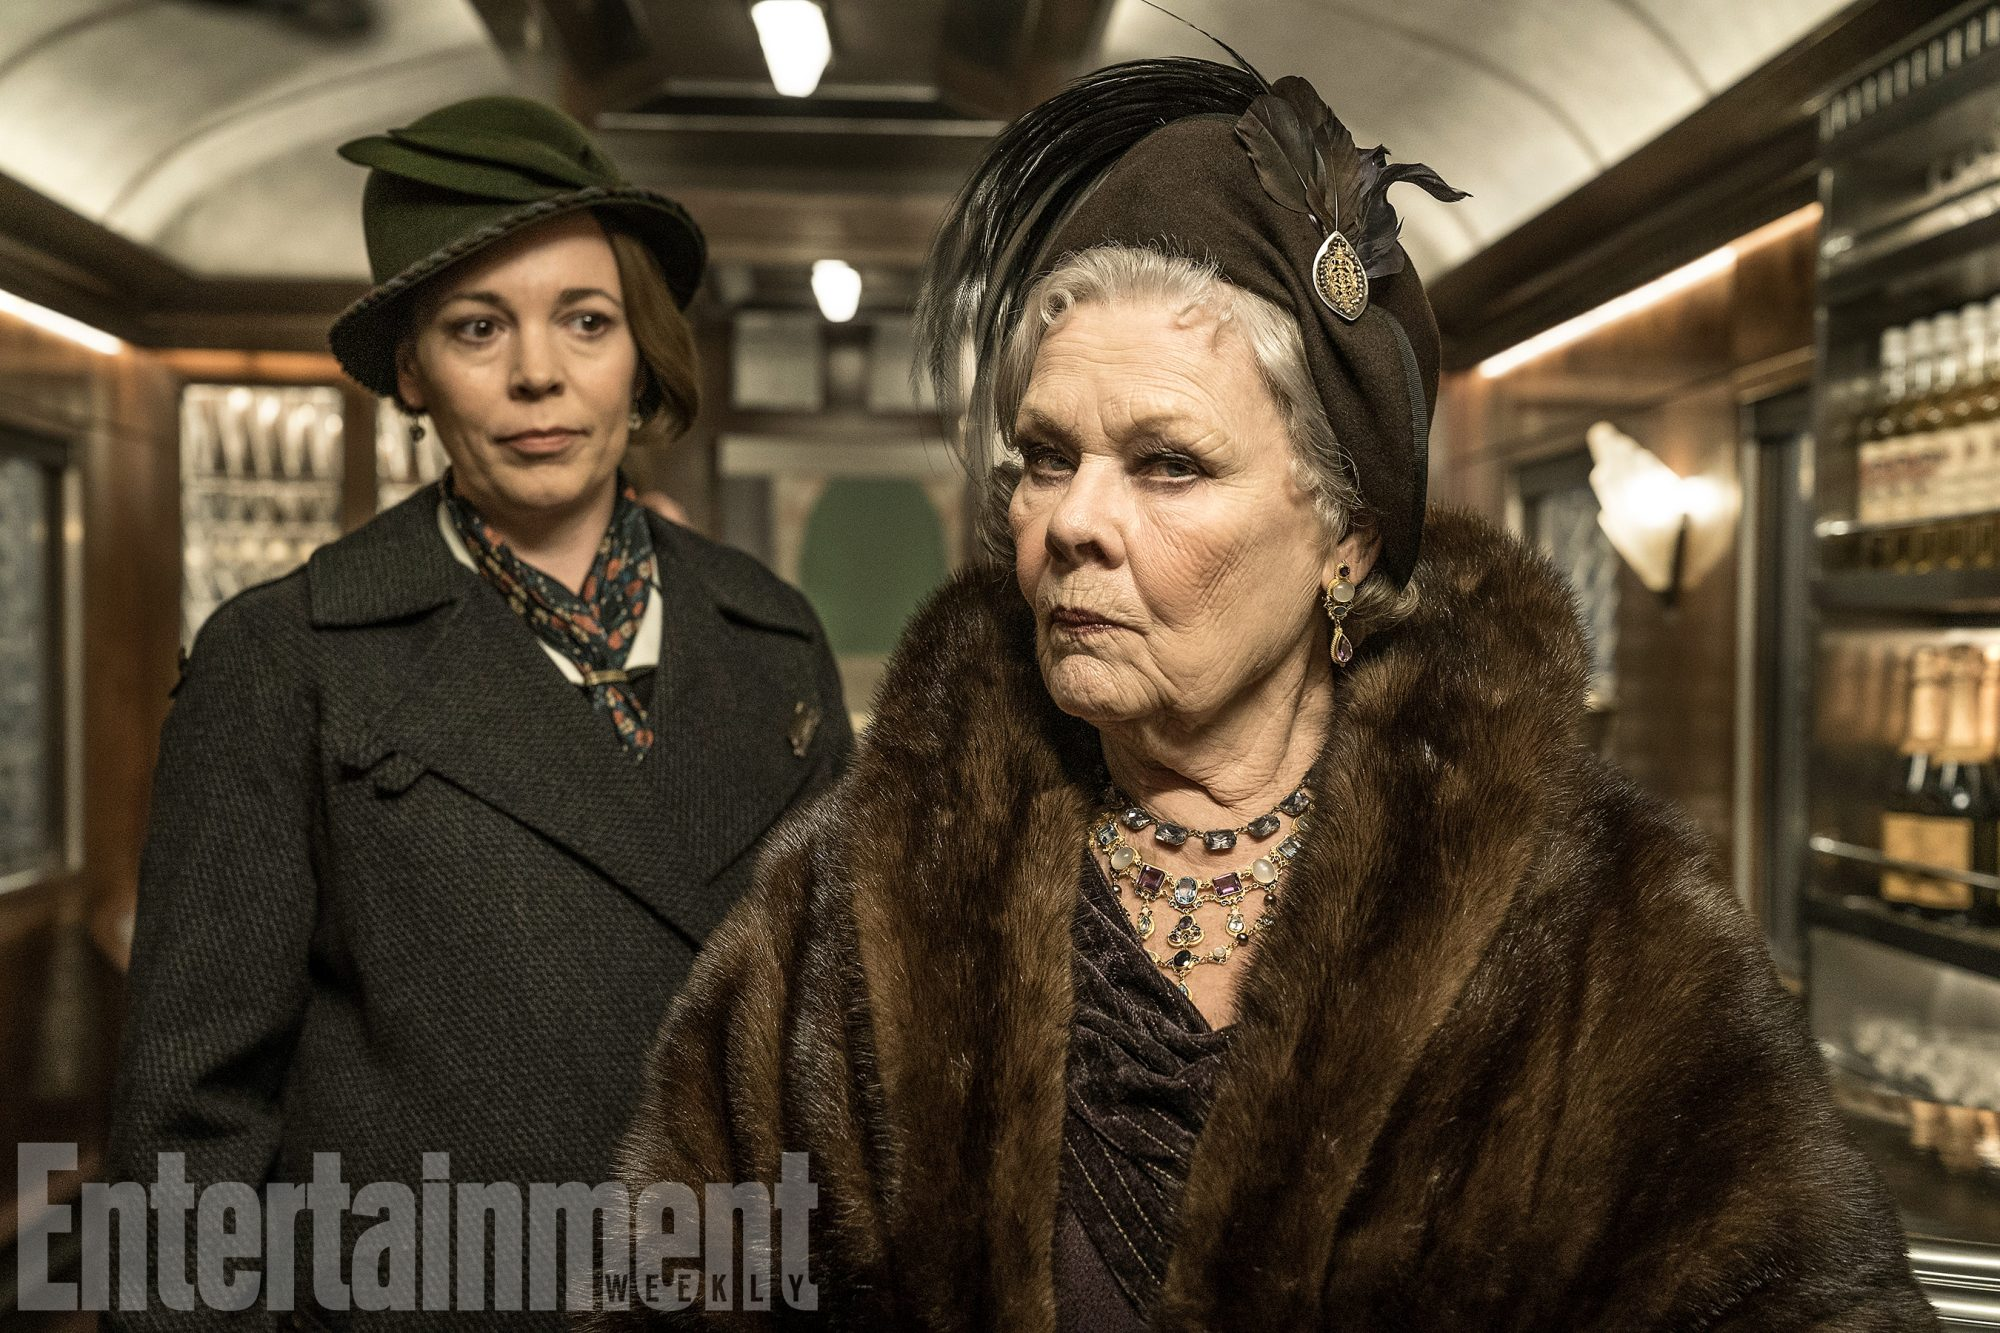 Olivia Colman as Hildegarde Schmidt and Judi Dench as Princess Dragomiroff